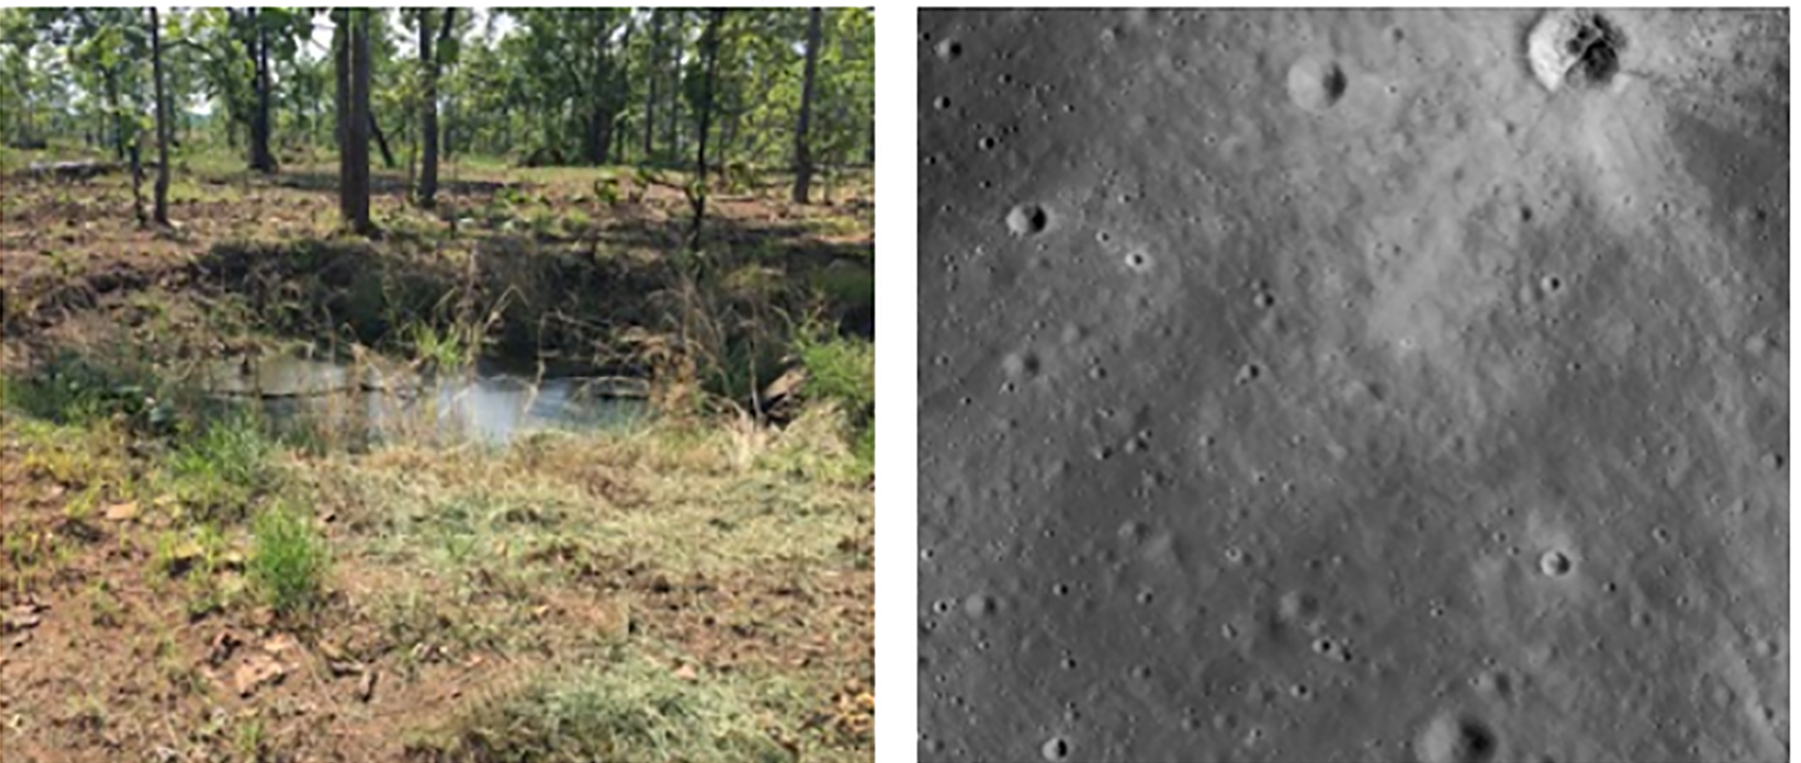 Bomb craters on Earth have similarities to meteor craters on the moon.